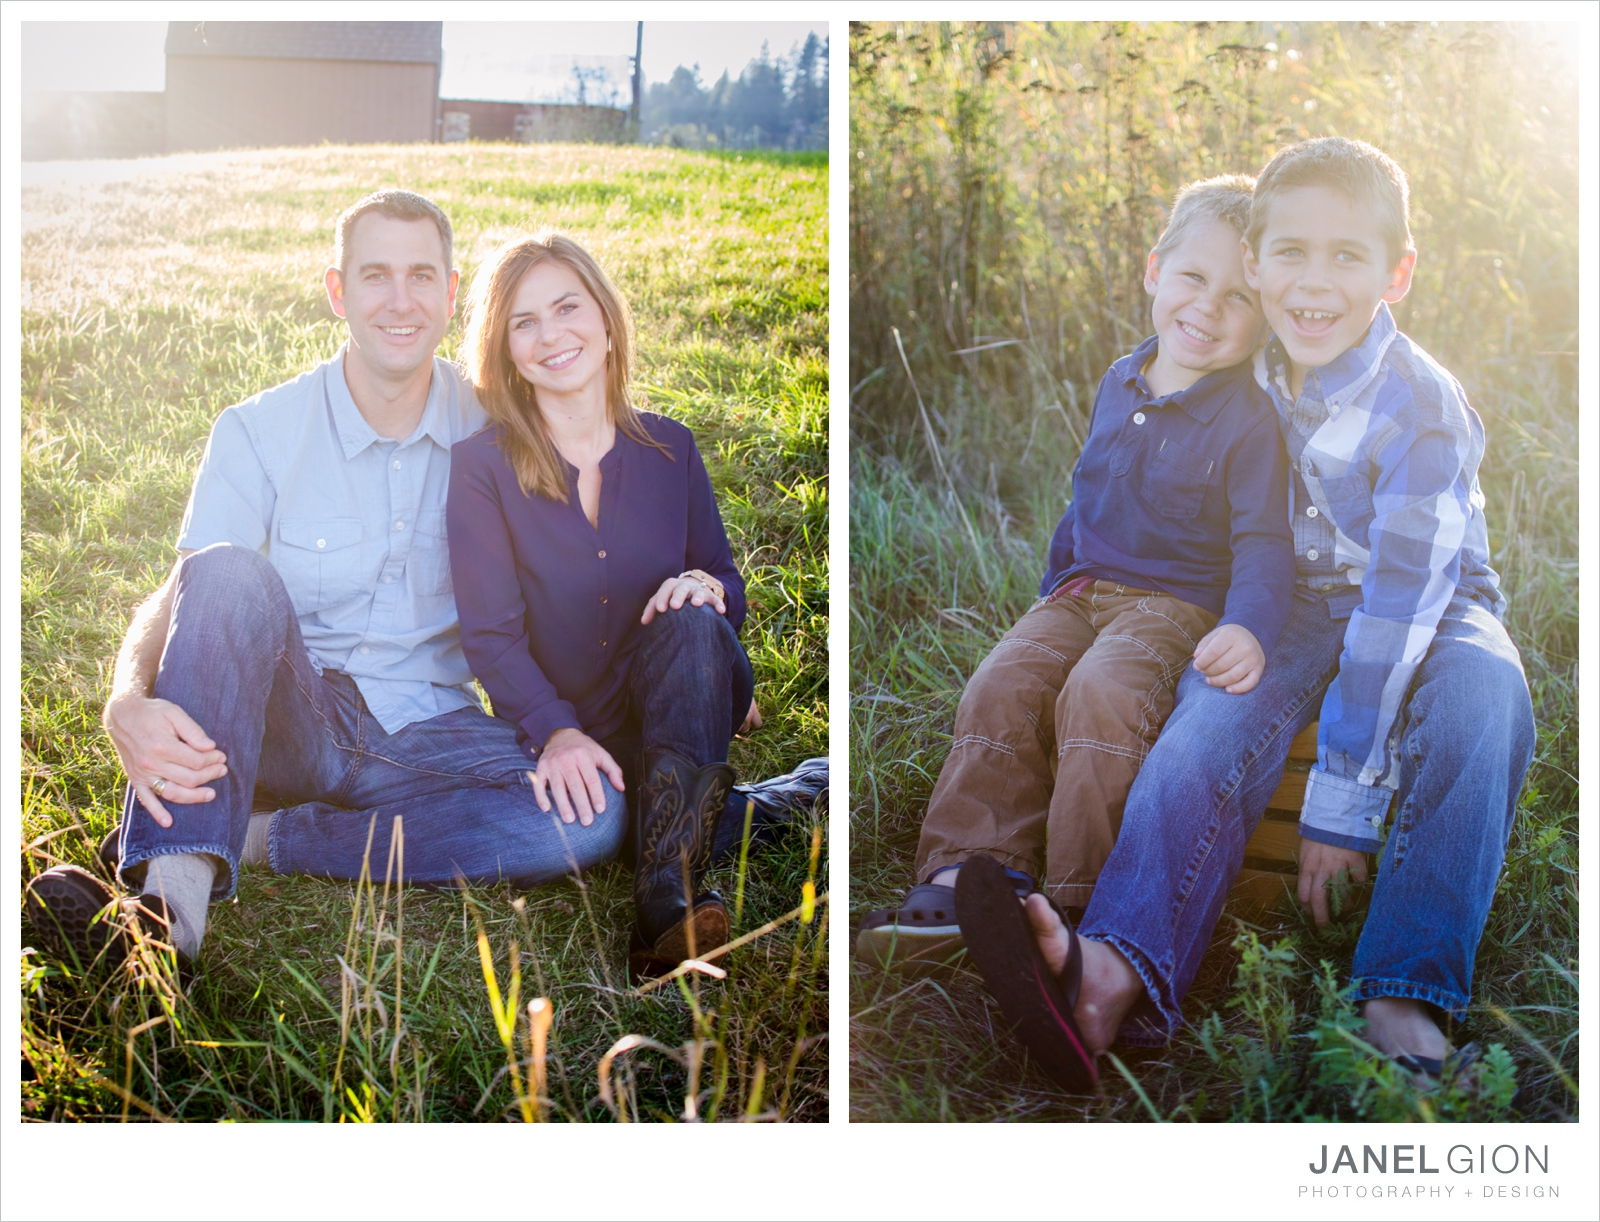 North-Idaho-Family-Children-Photographer-Year-in-Review-Contest-2013-Lifestyle-Family-Portraits-by-Janel-Gion-Photography_0044.jpg